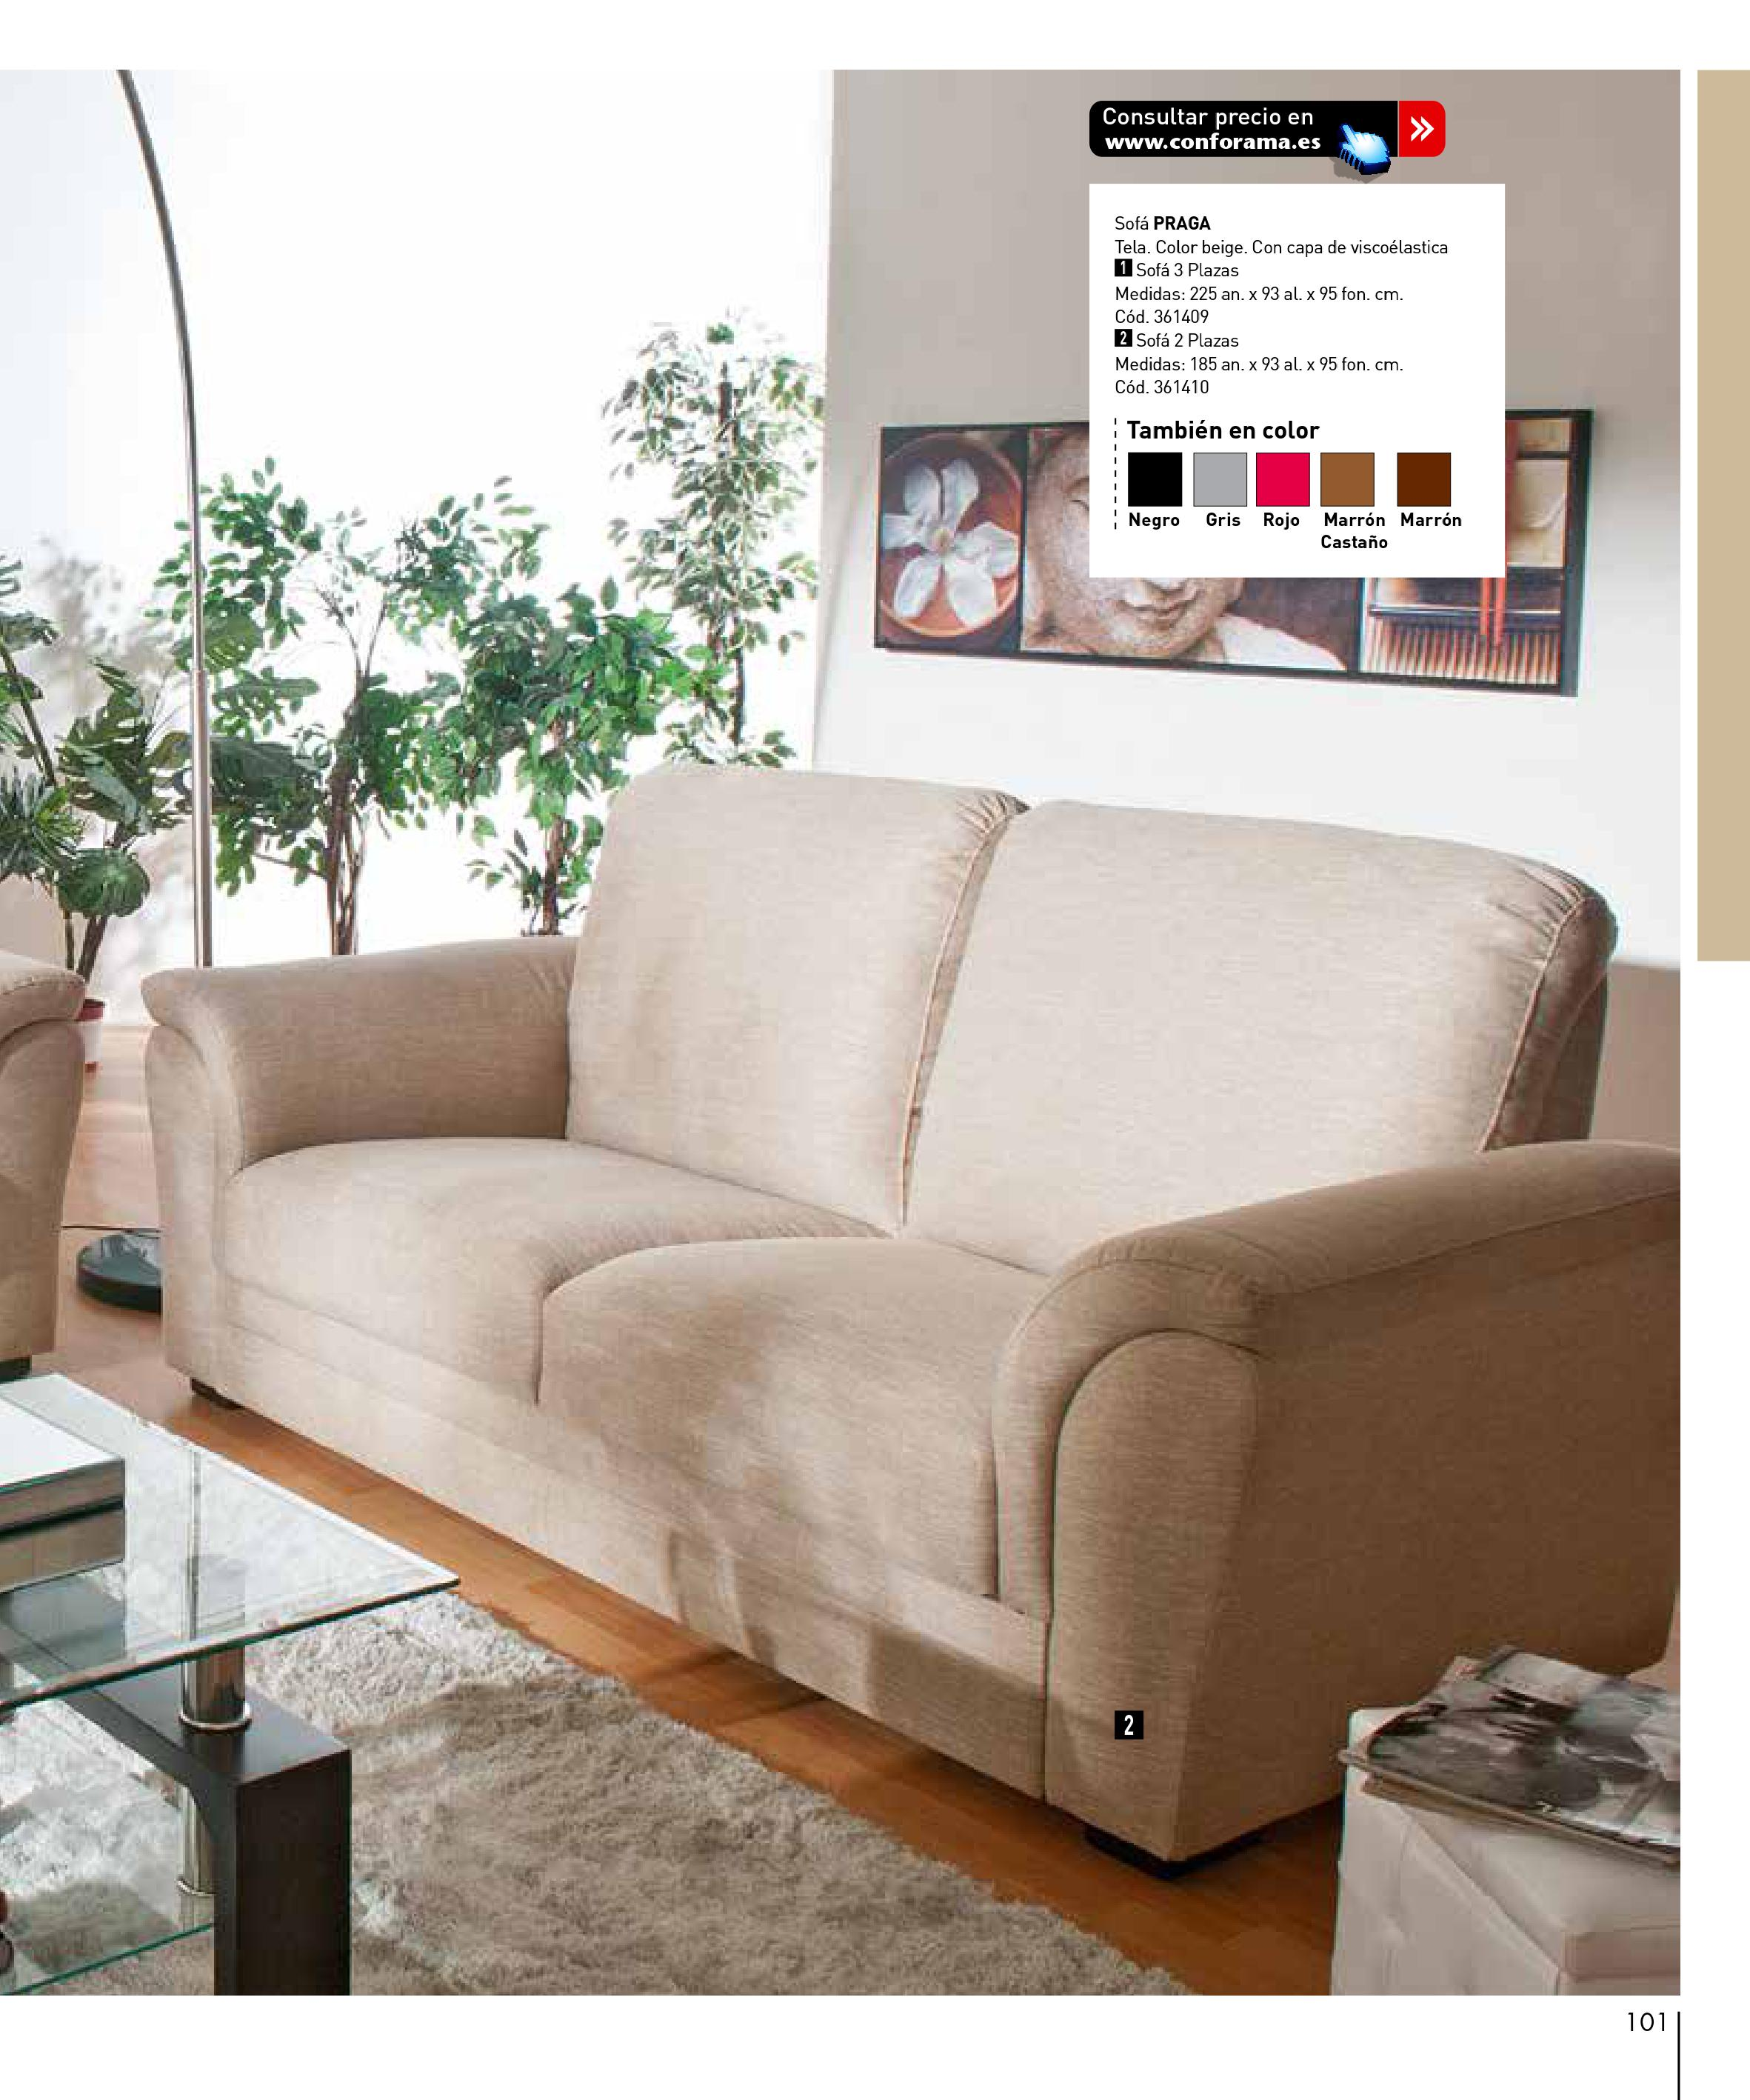 Sofas conforama 2015101 for Sofas conforama catalogo